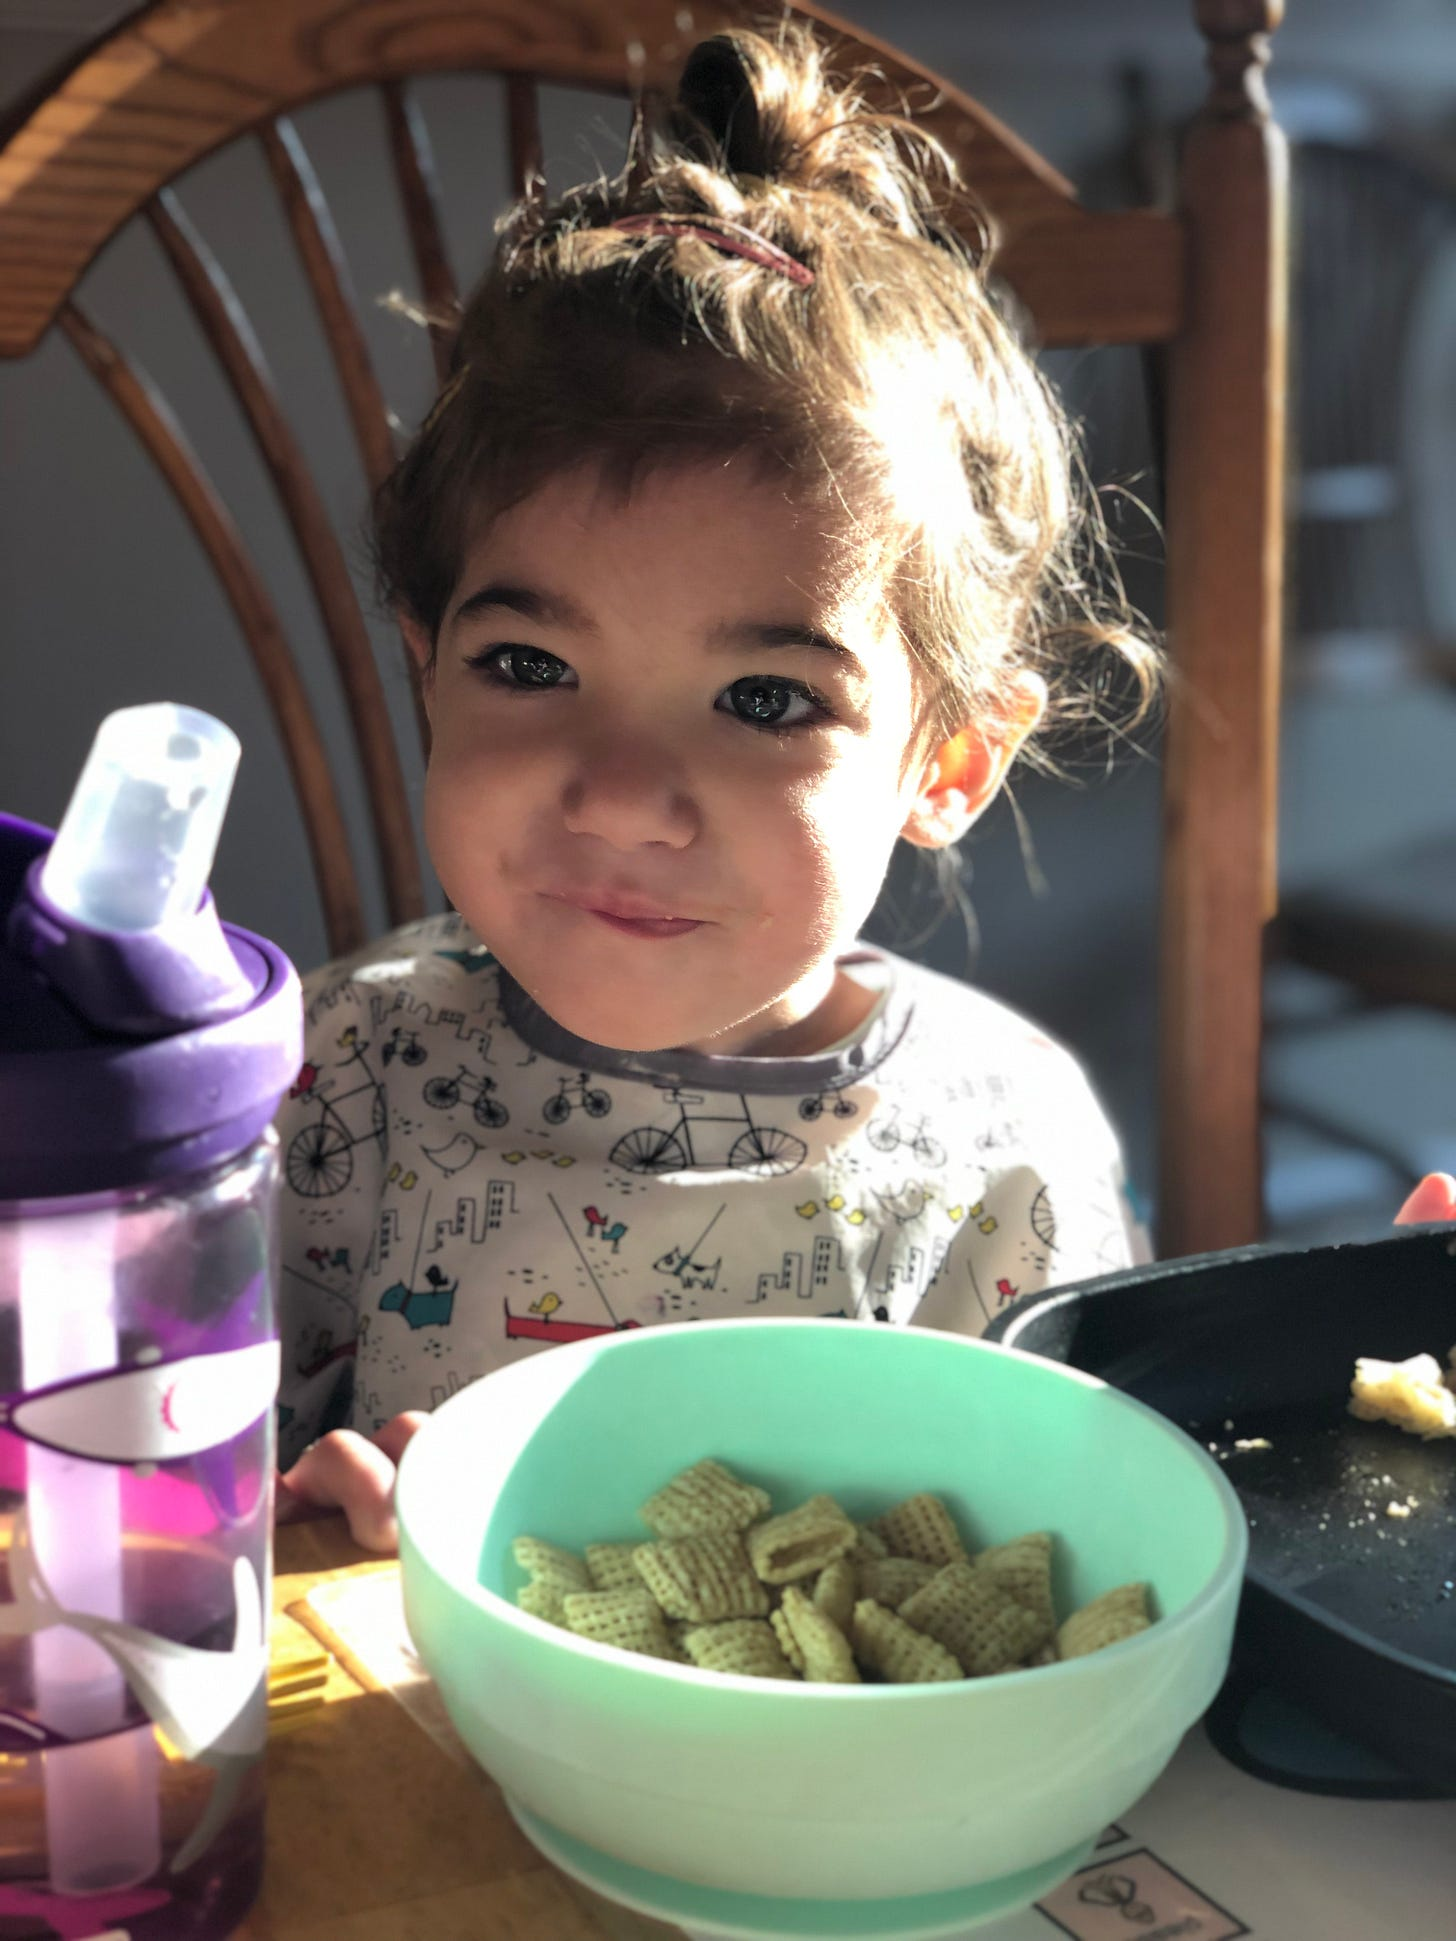 Photograph of a brown haired toddler sitting in a chair with a bowl of cereal in front of her.